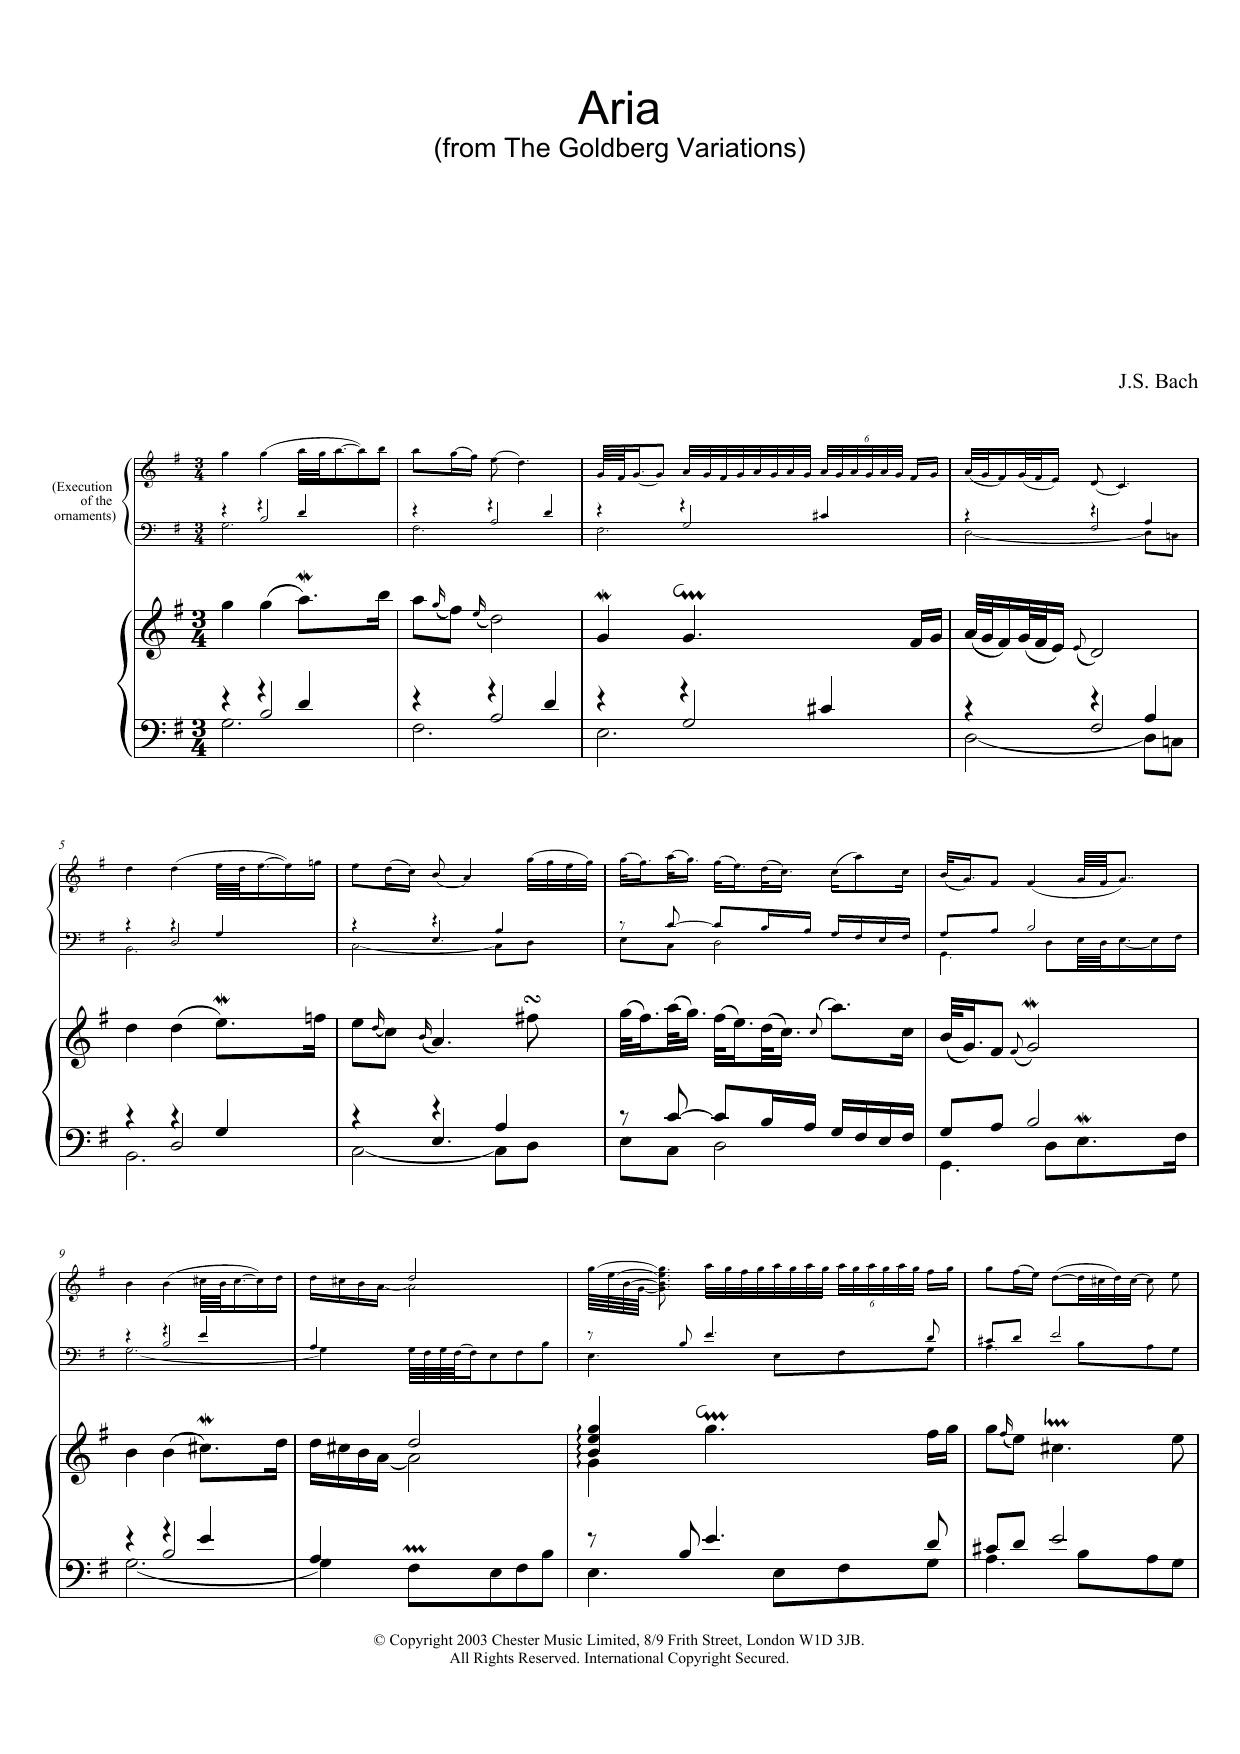 Aria (from The Goldberg Variations) sheet music